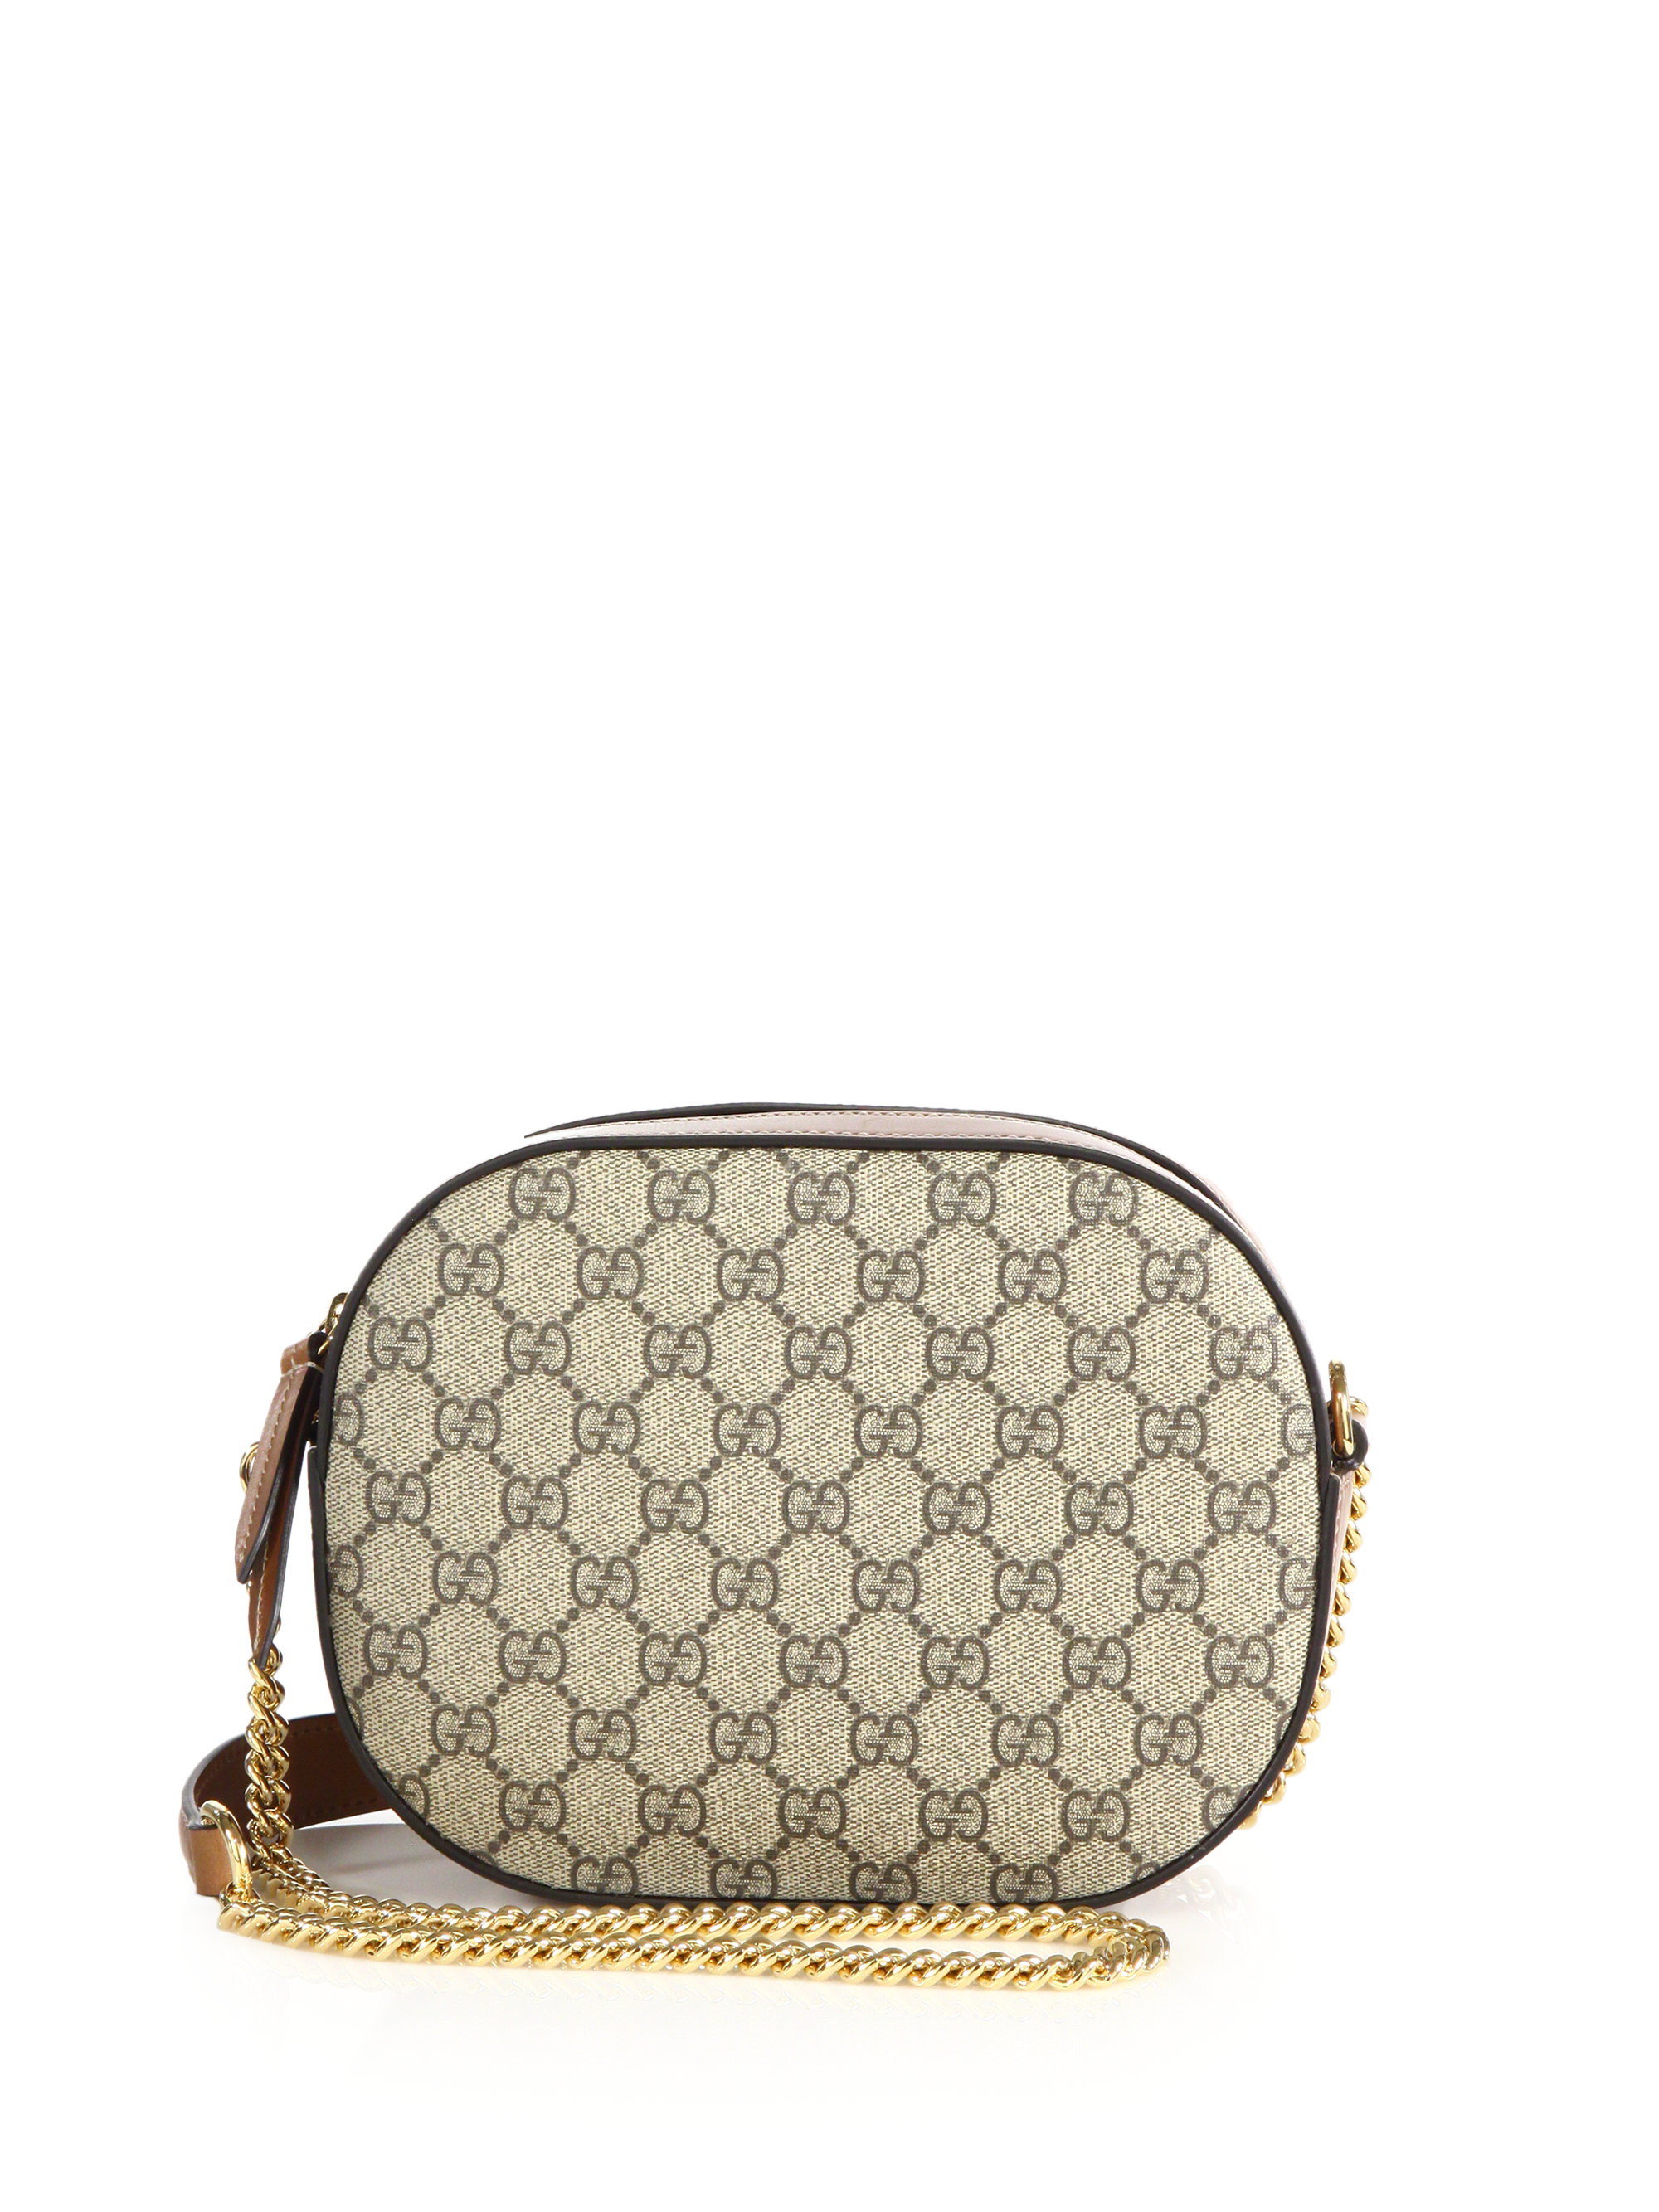 2840a61b565 Lyst - Gucci GG Supreme Canvas Mini Chain Bag in Brown